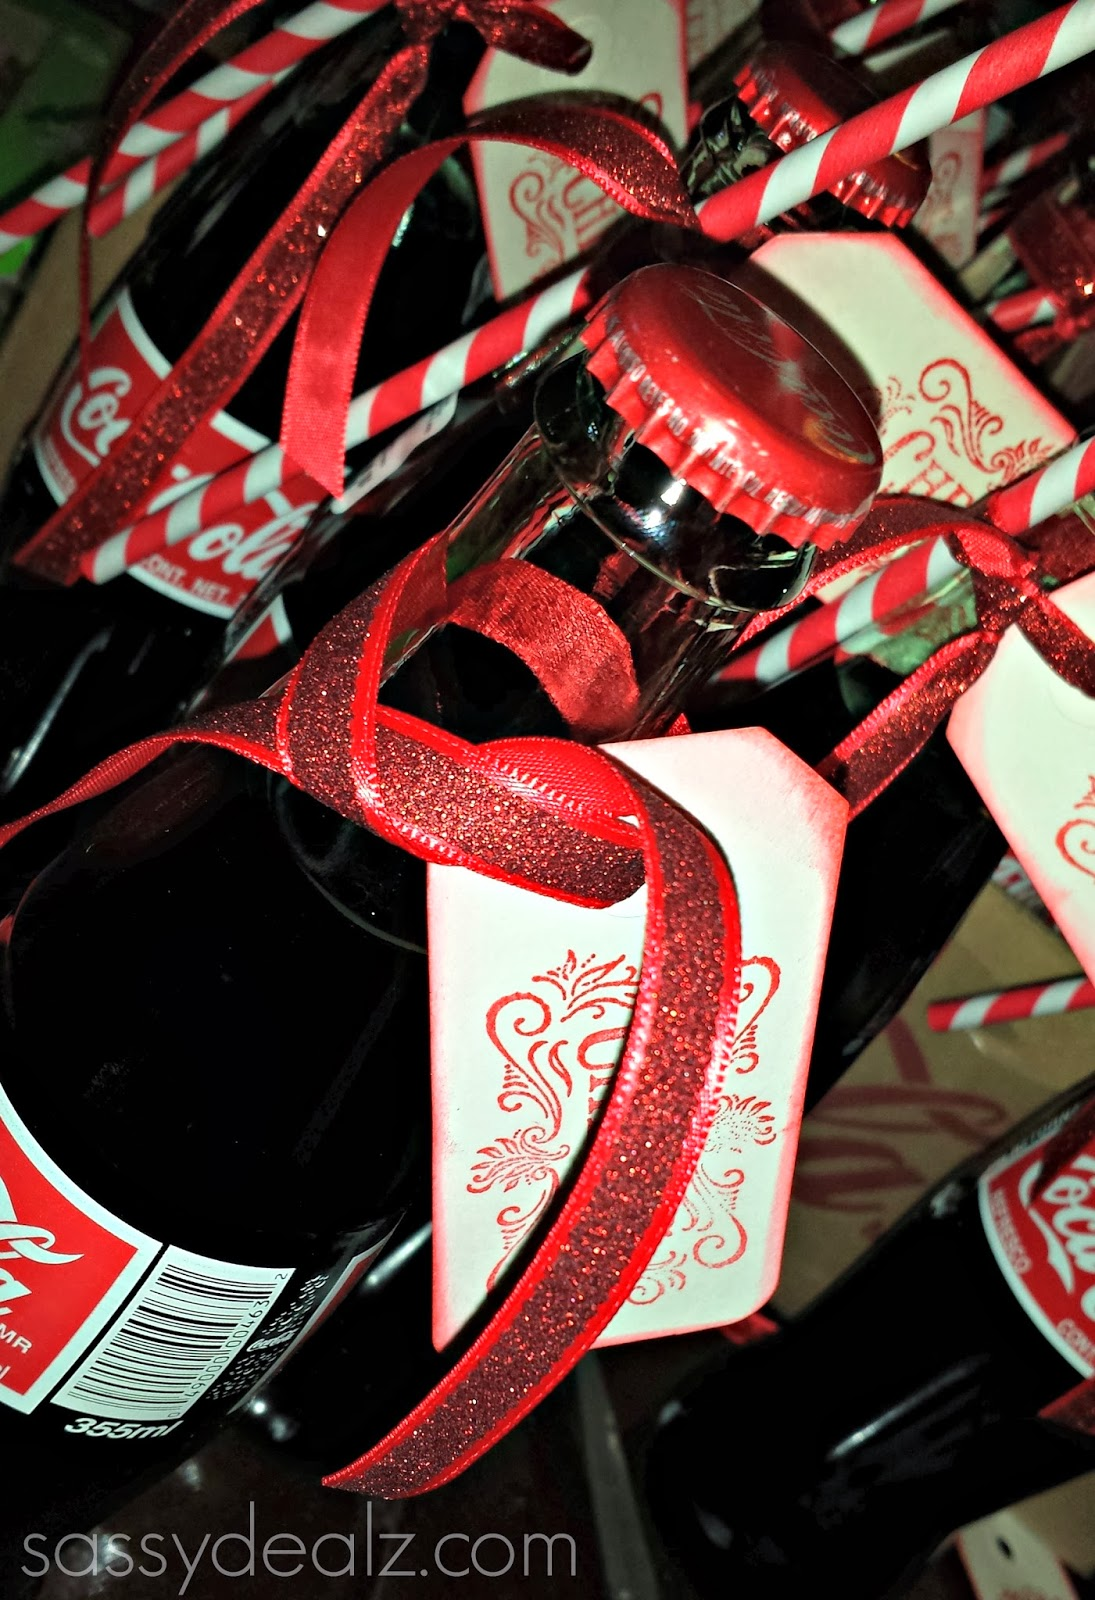 diy coke bottle wedding favors